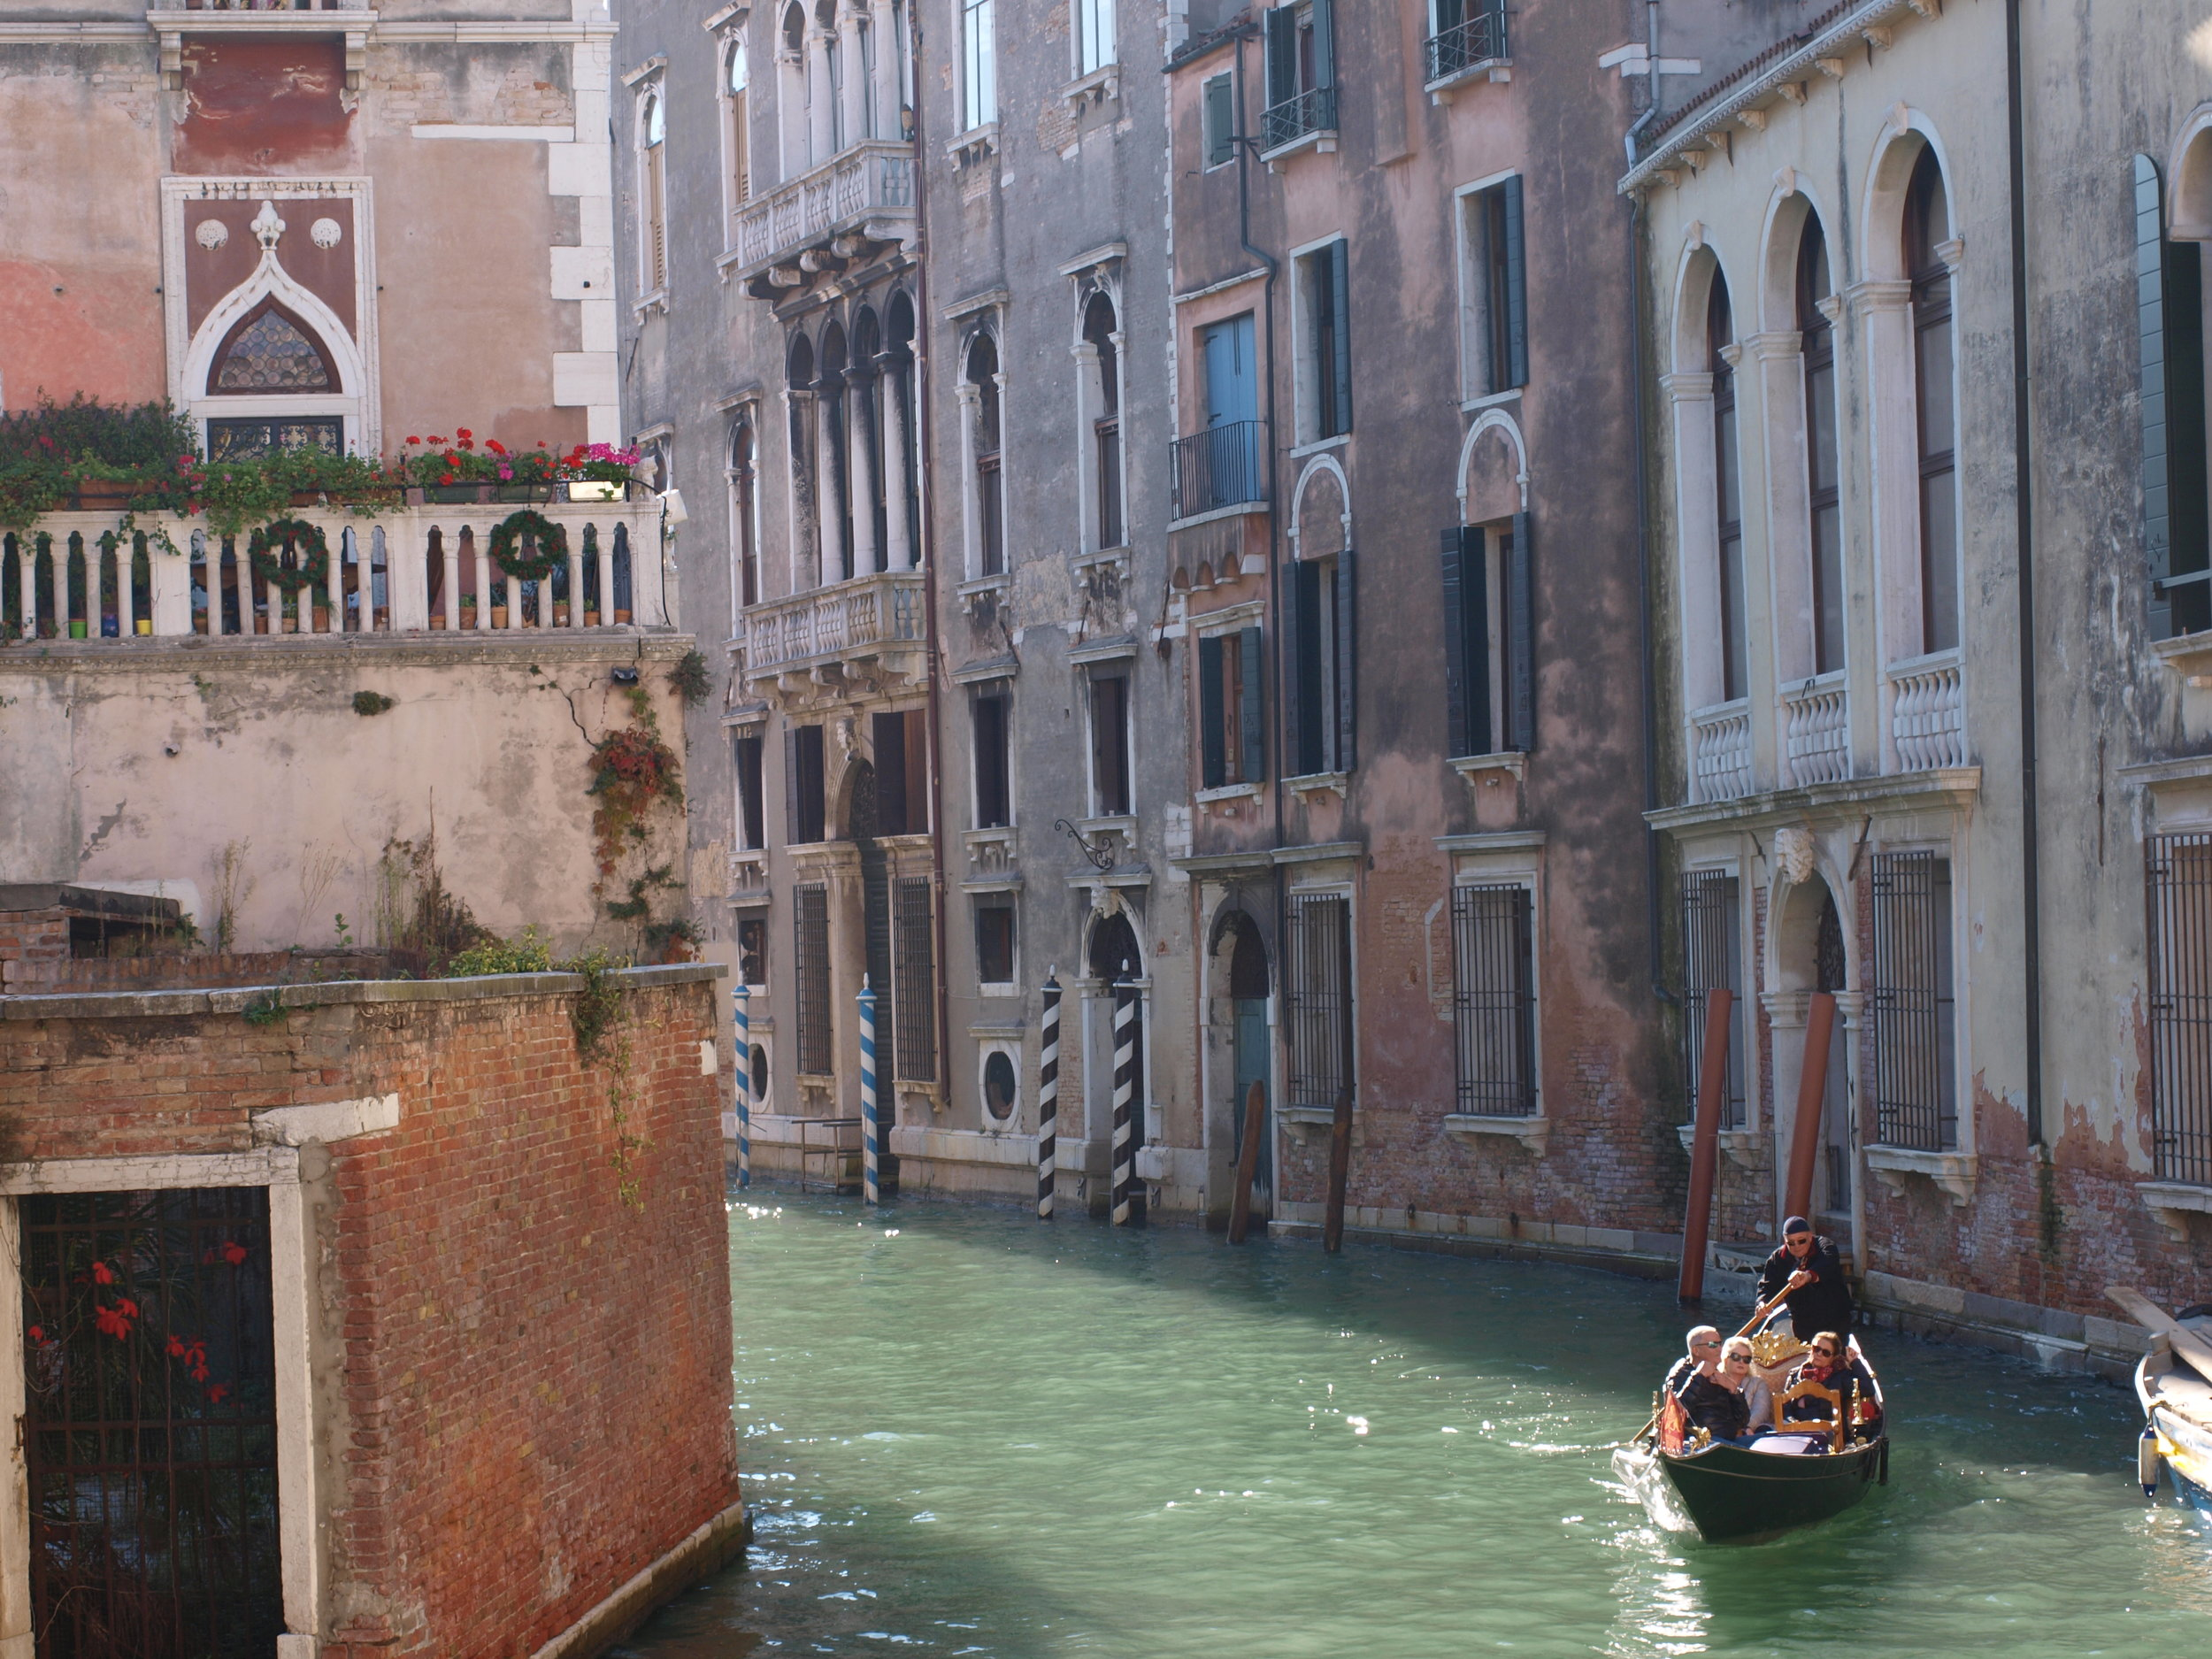 Venice is filled with pure beauty like this!